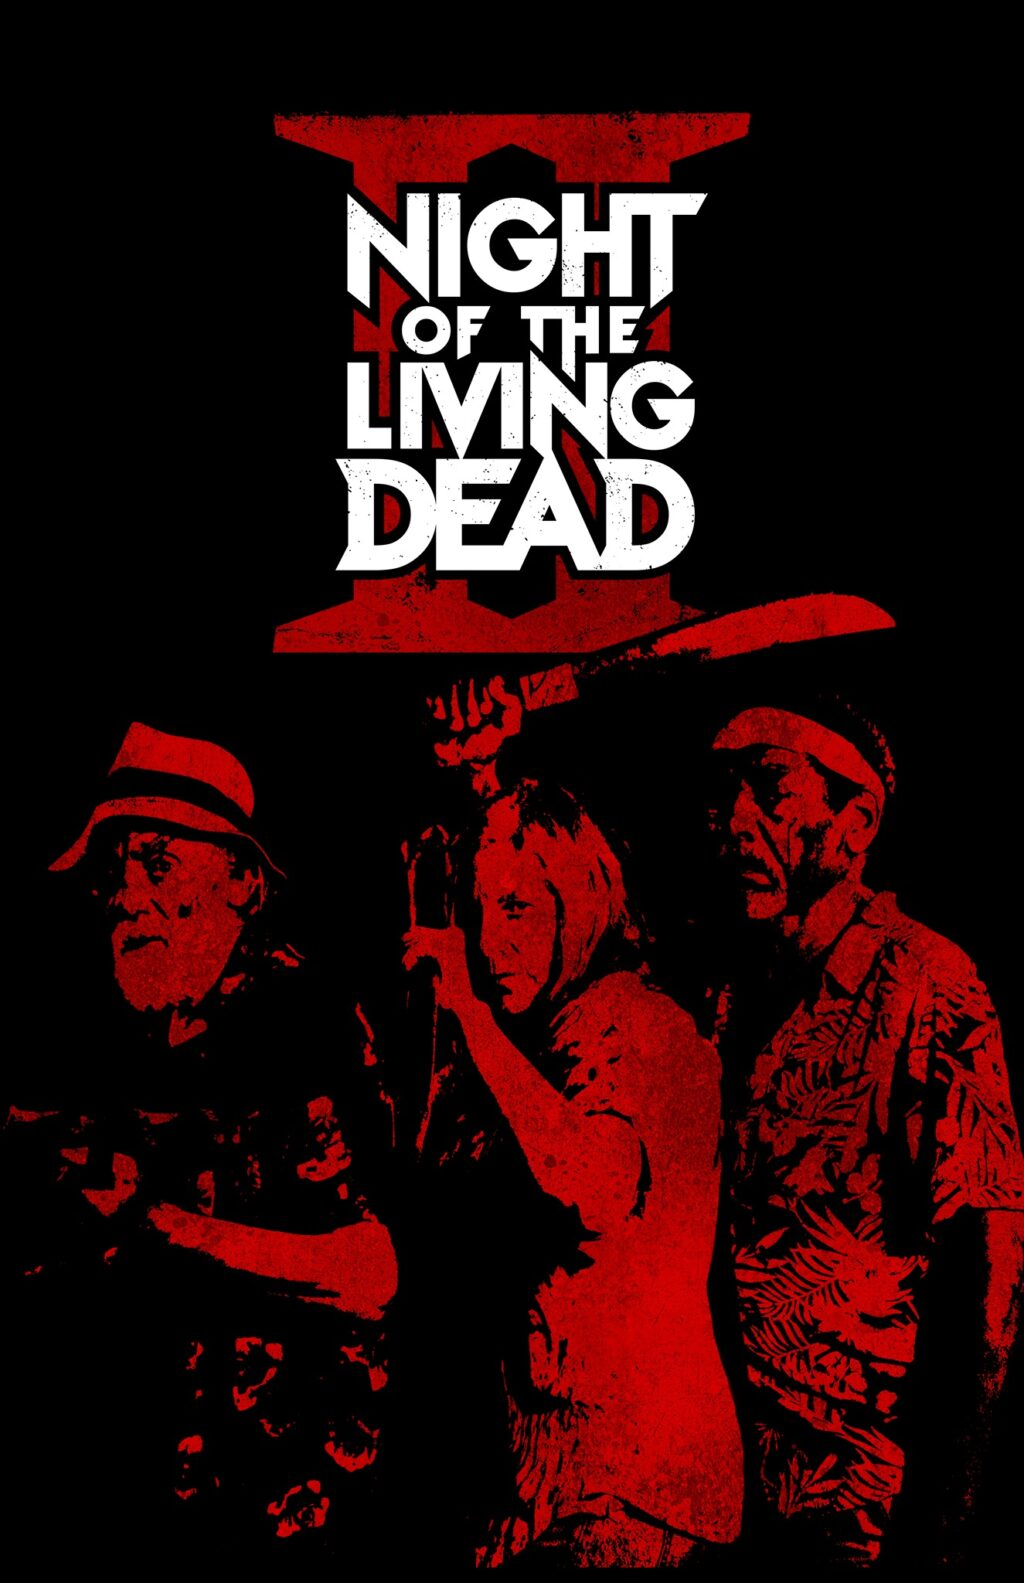 Night of the Living Dead II Poster 1024x1583 - David Howard Thornton is a Zombie in NIGHT OF THE LIVING DEAD II